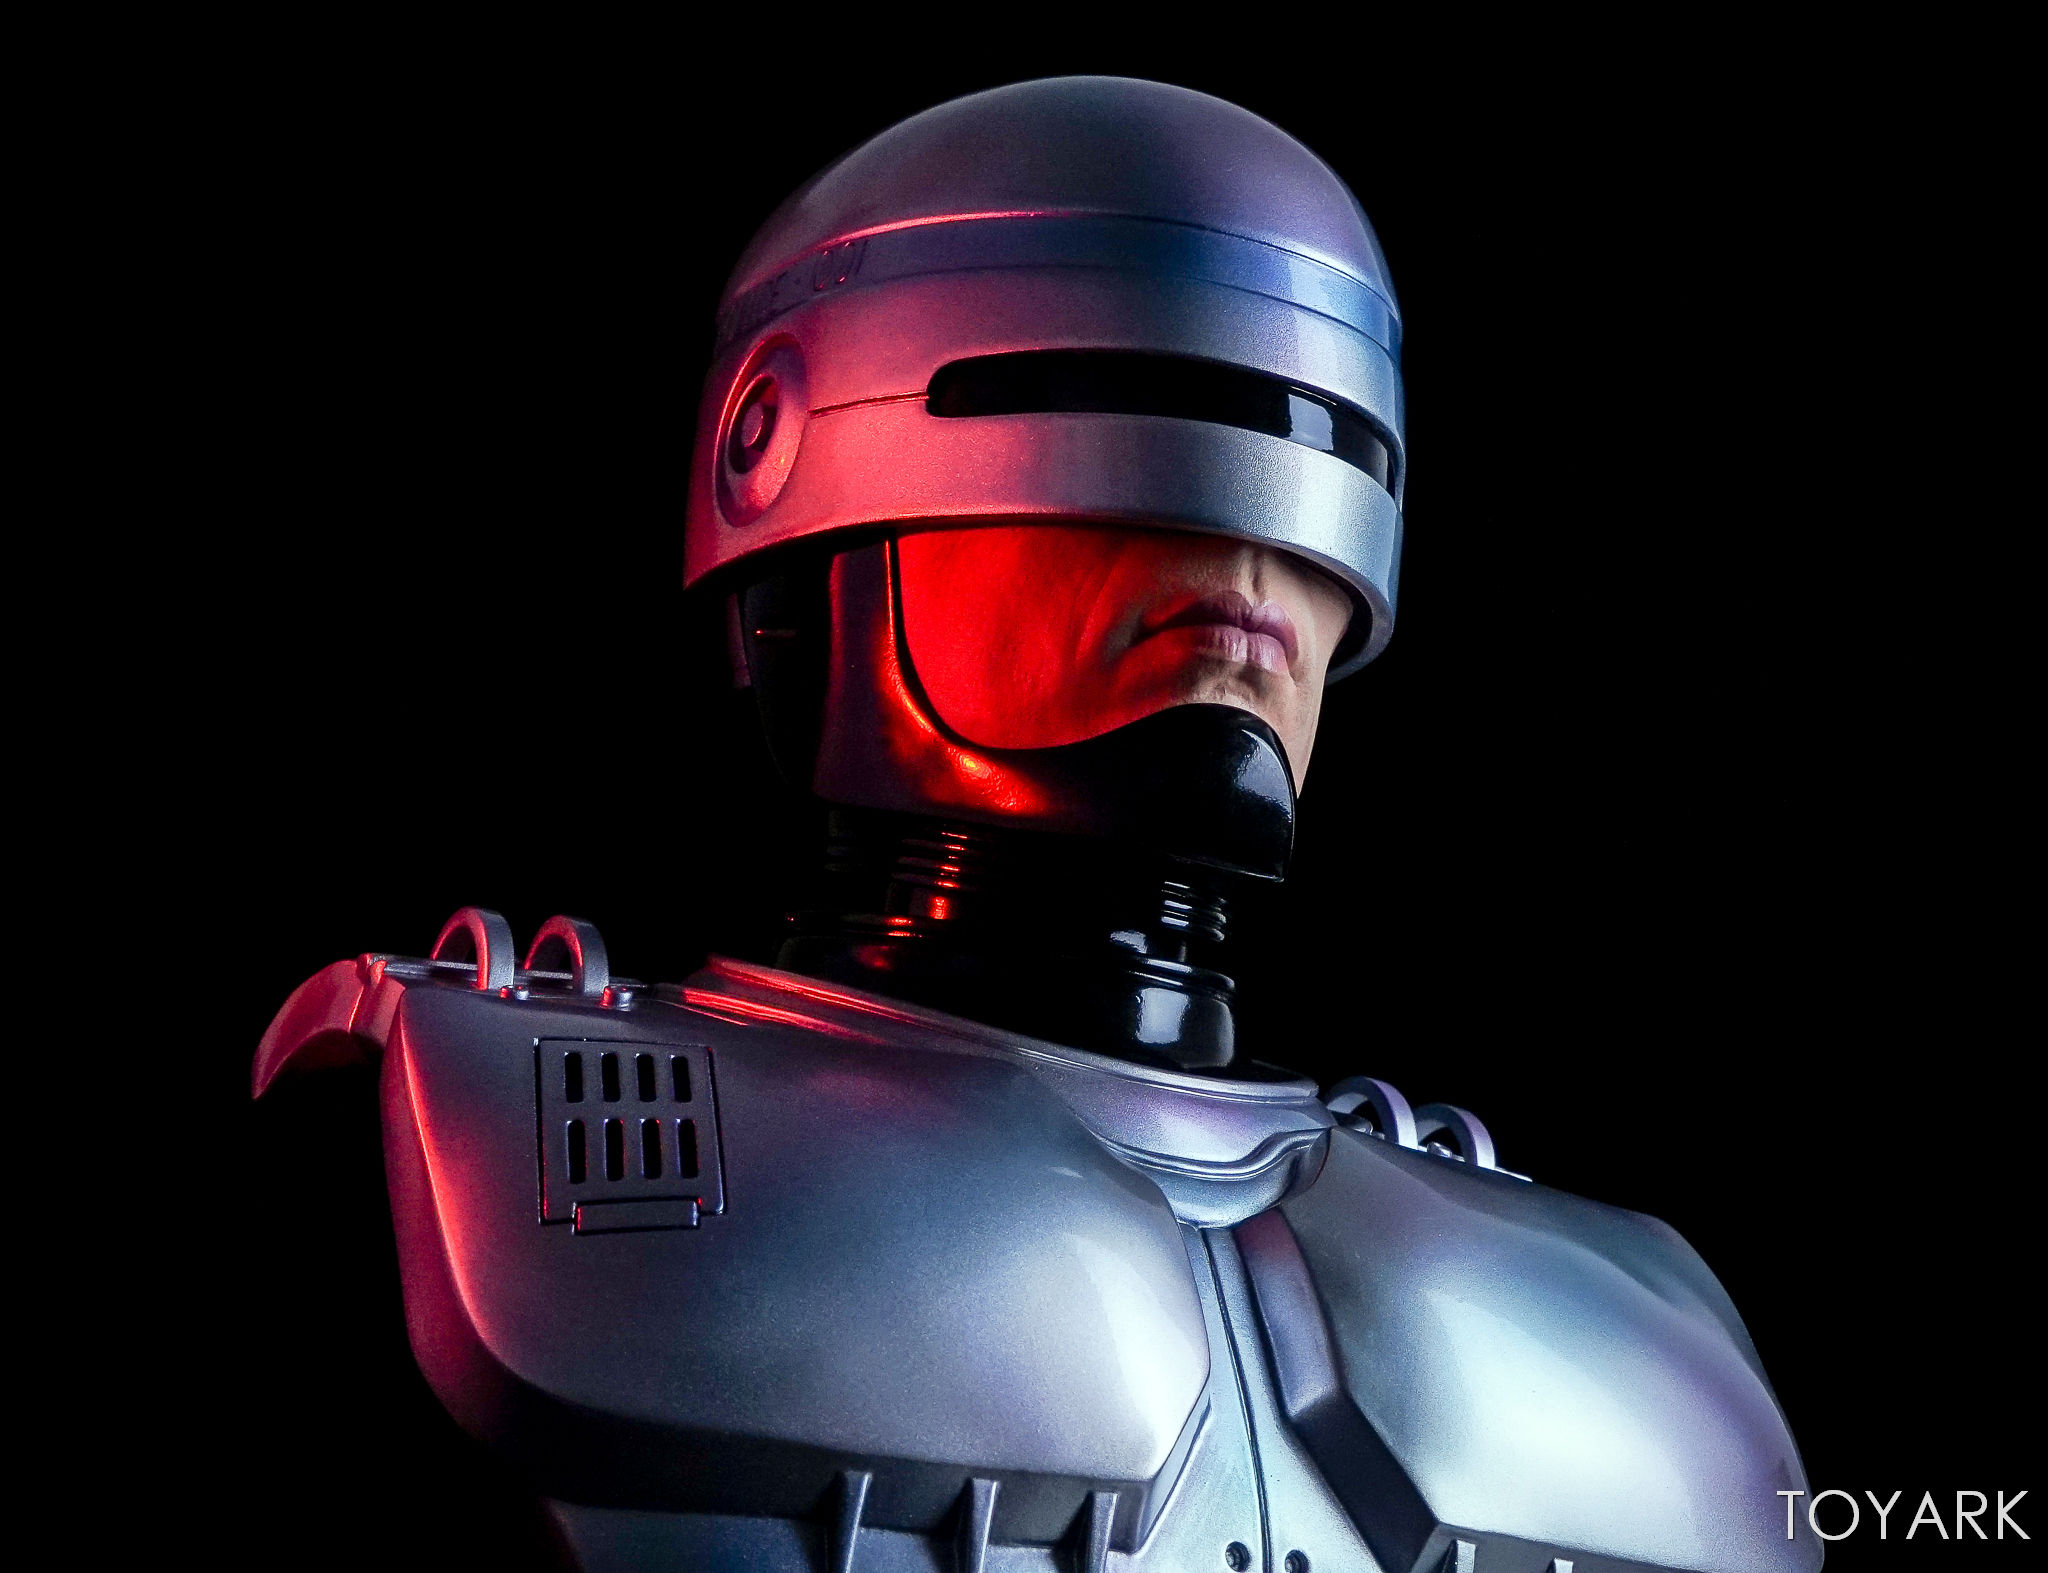 http://news.toyark.com/wp-content/uploads/sites/4/2017/09/Chronicle-Robocop-Half-Scale-Bust-033.jpg